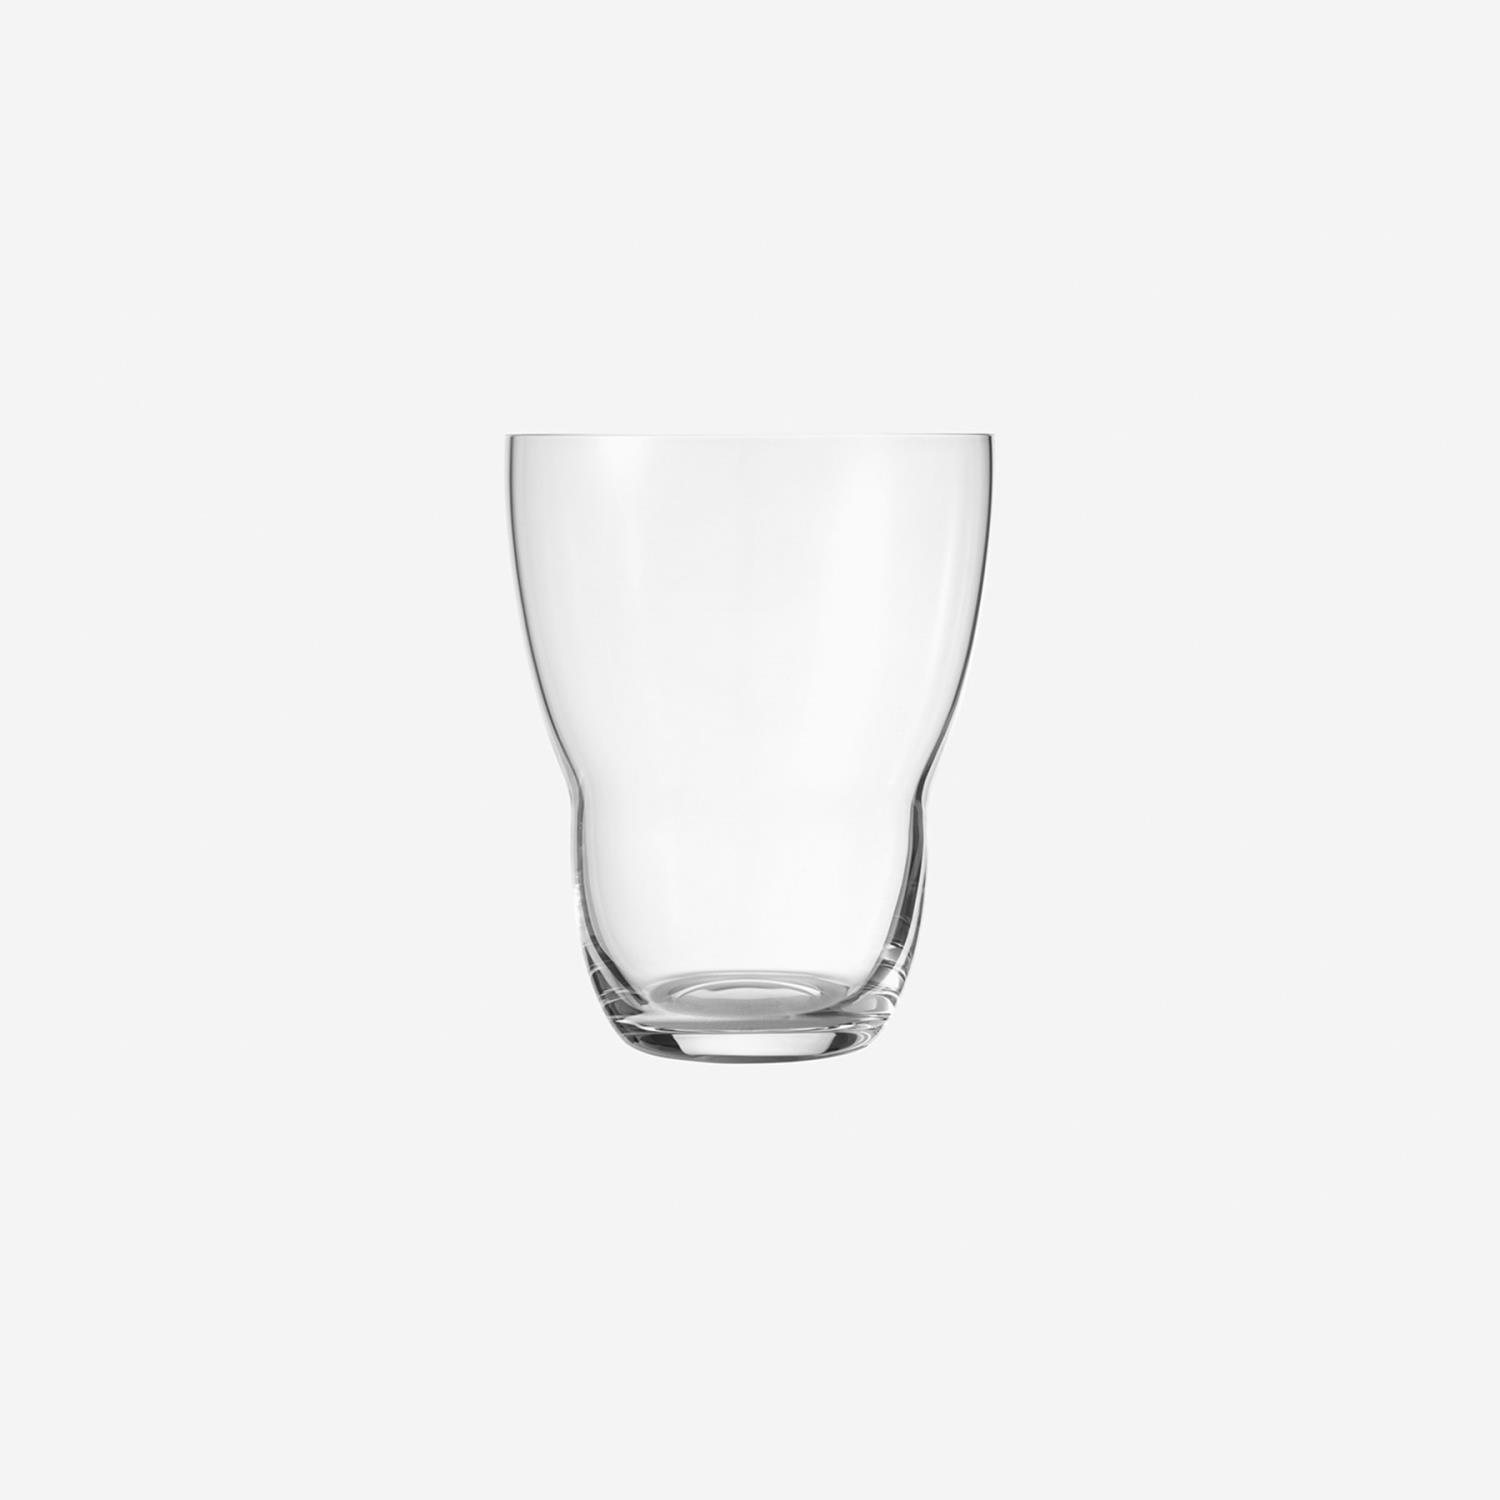 Vipp242 glass 33cl 2 pcs